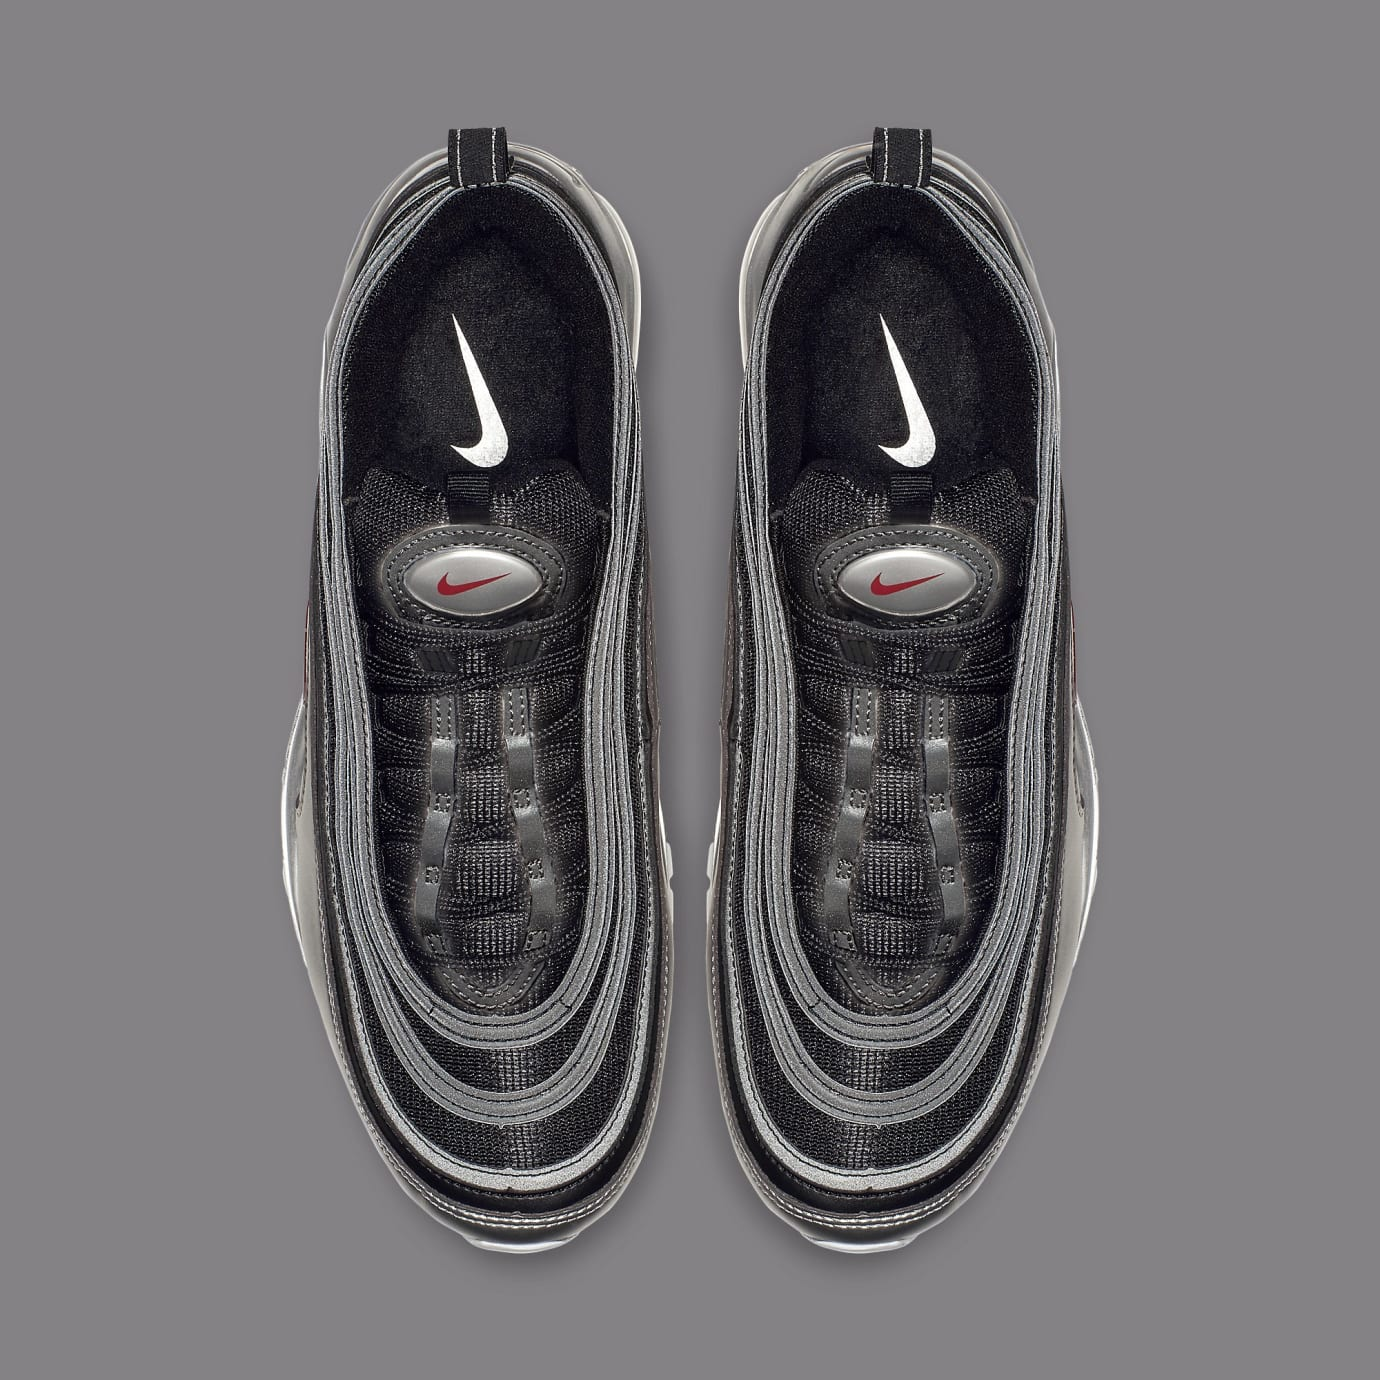 Nike Air Max 97 'Black/Metallic Silver' AT5458-001 (Top)